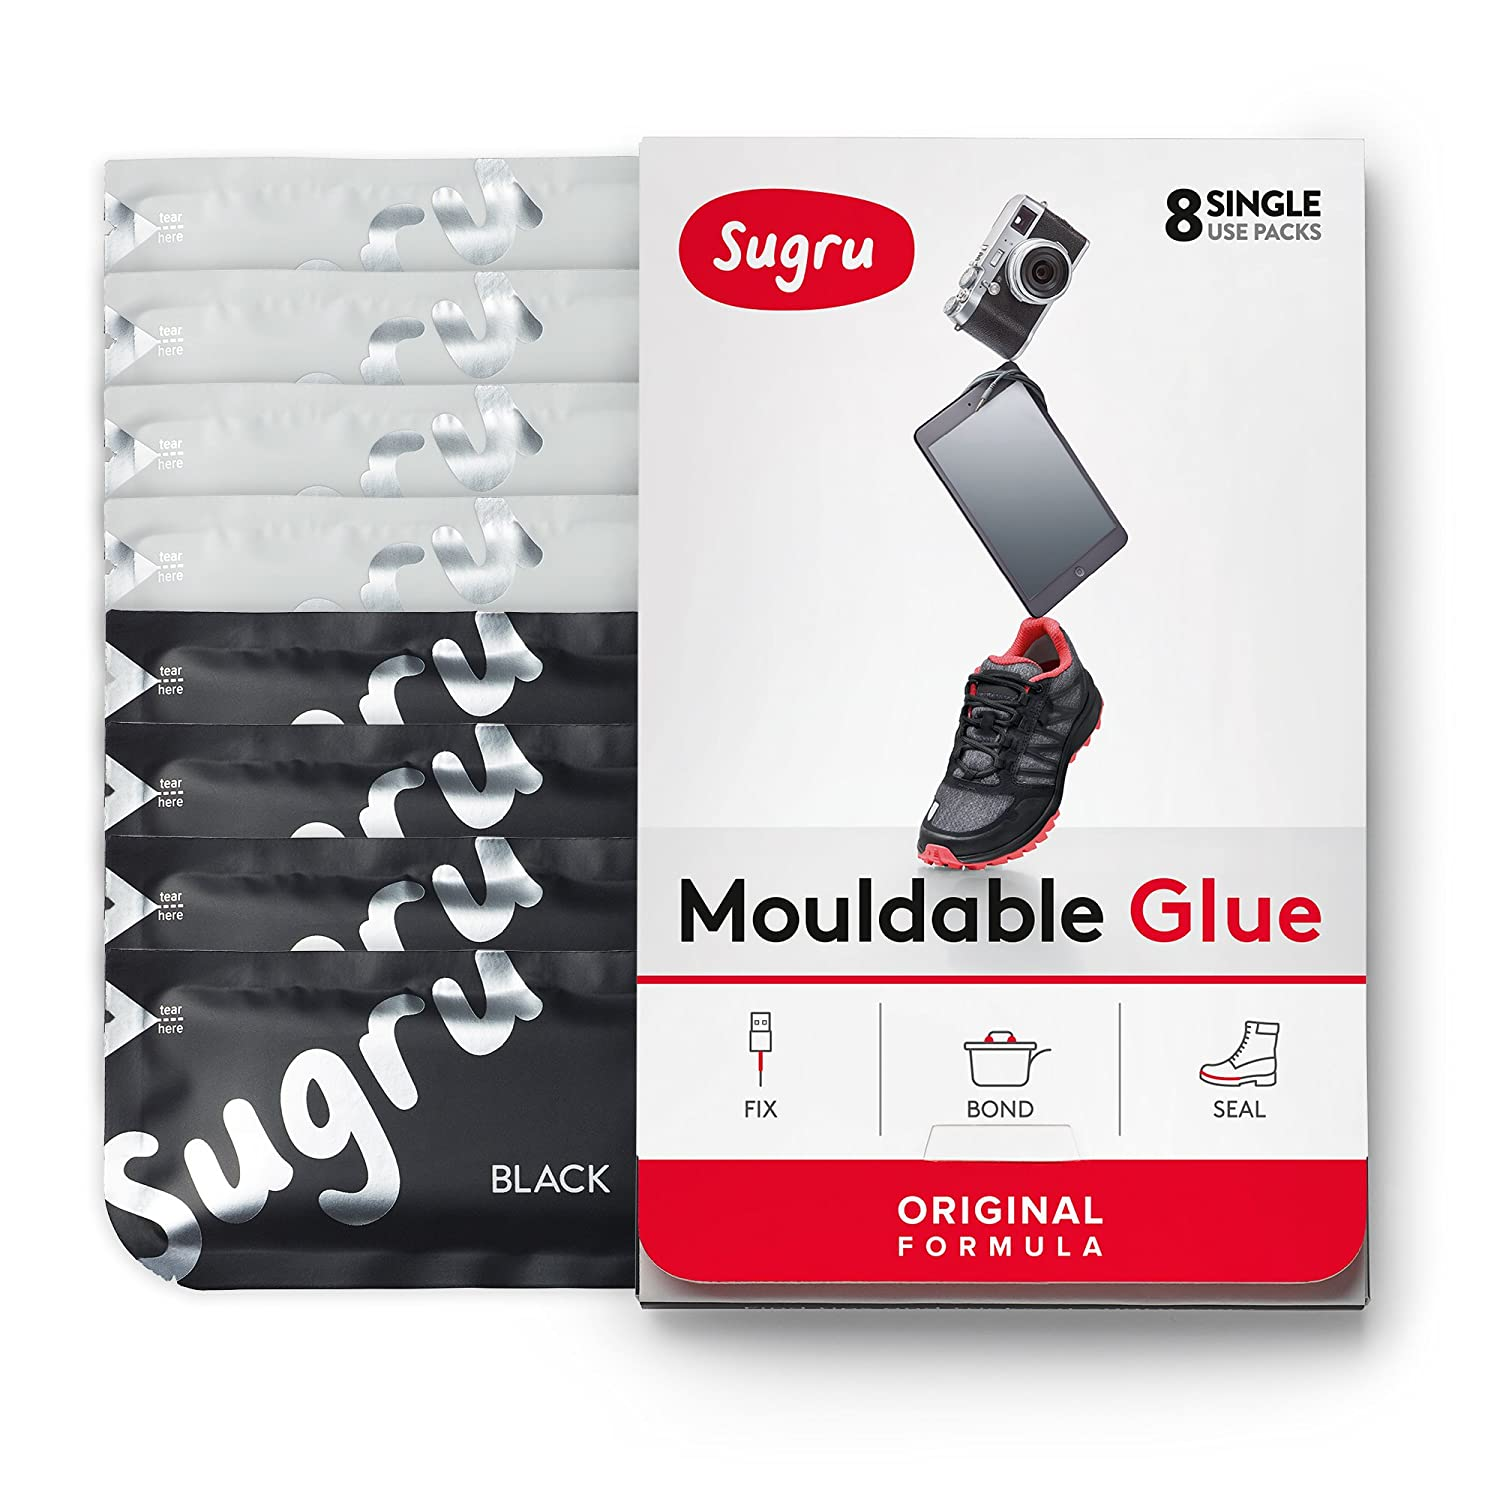 Sugru Moldable Glue   Original Formula   Black & White 8 Pack by Sugru